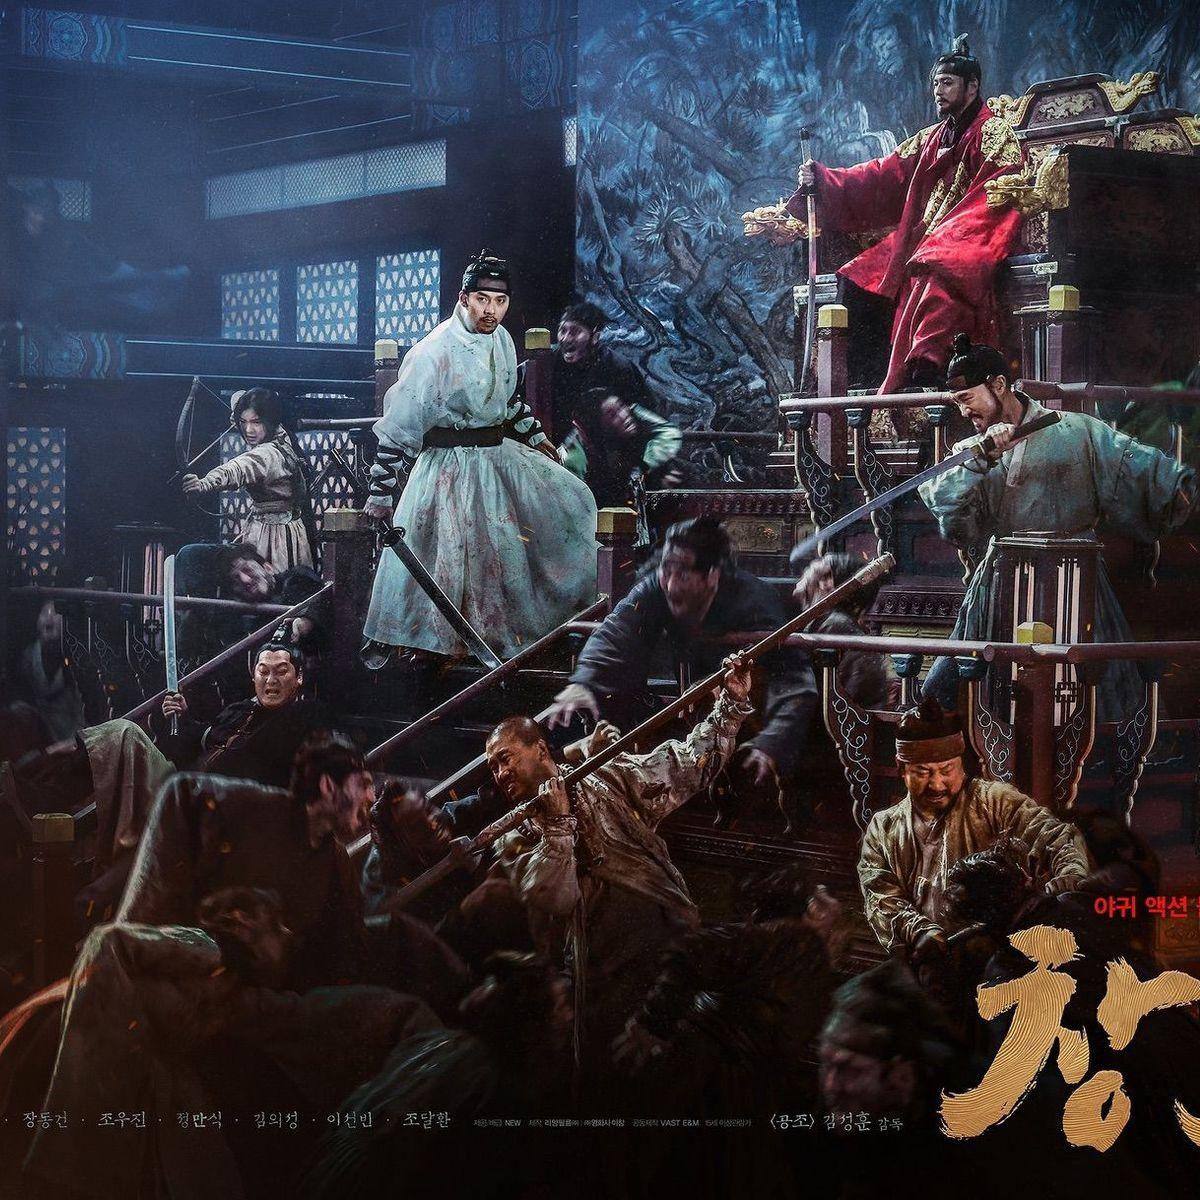 Zombies are \'Rampant\' in first trailer for new Korean horror flick ...